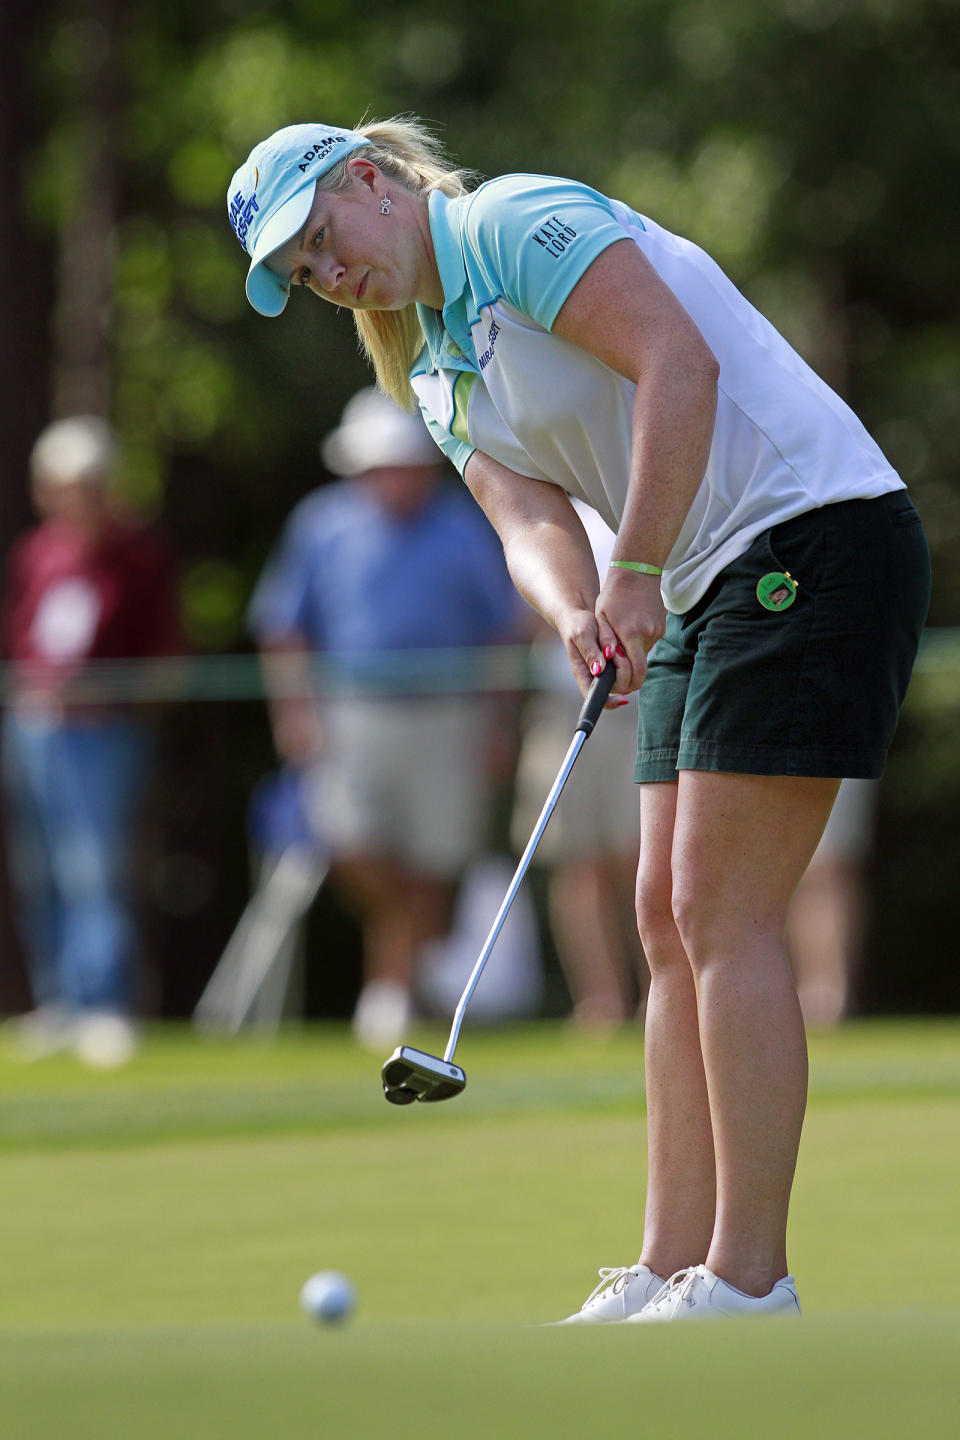 Brittany Lincicome putts on the 18th green during the third round of the Mobile Bay LPGA Classic golf tournament, Saturday, April 28, 2012, in Mobile, Ala. (AP Photo/Press-Register, Bill Starling) MAGS OUT